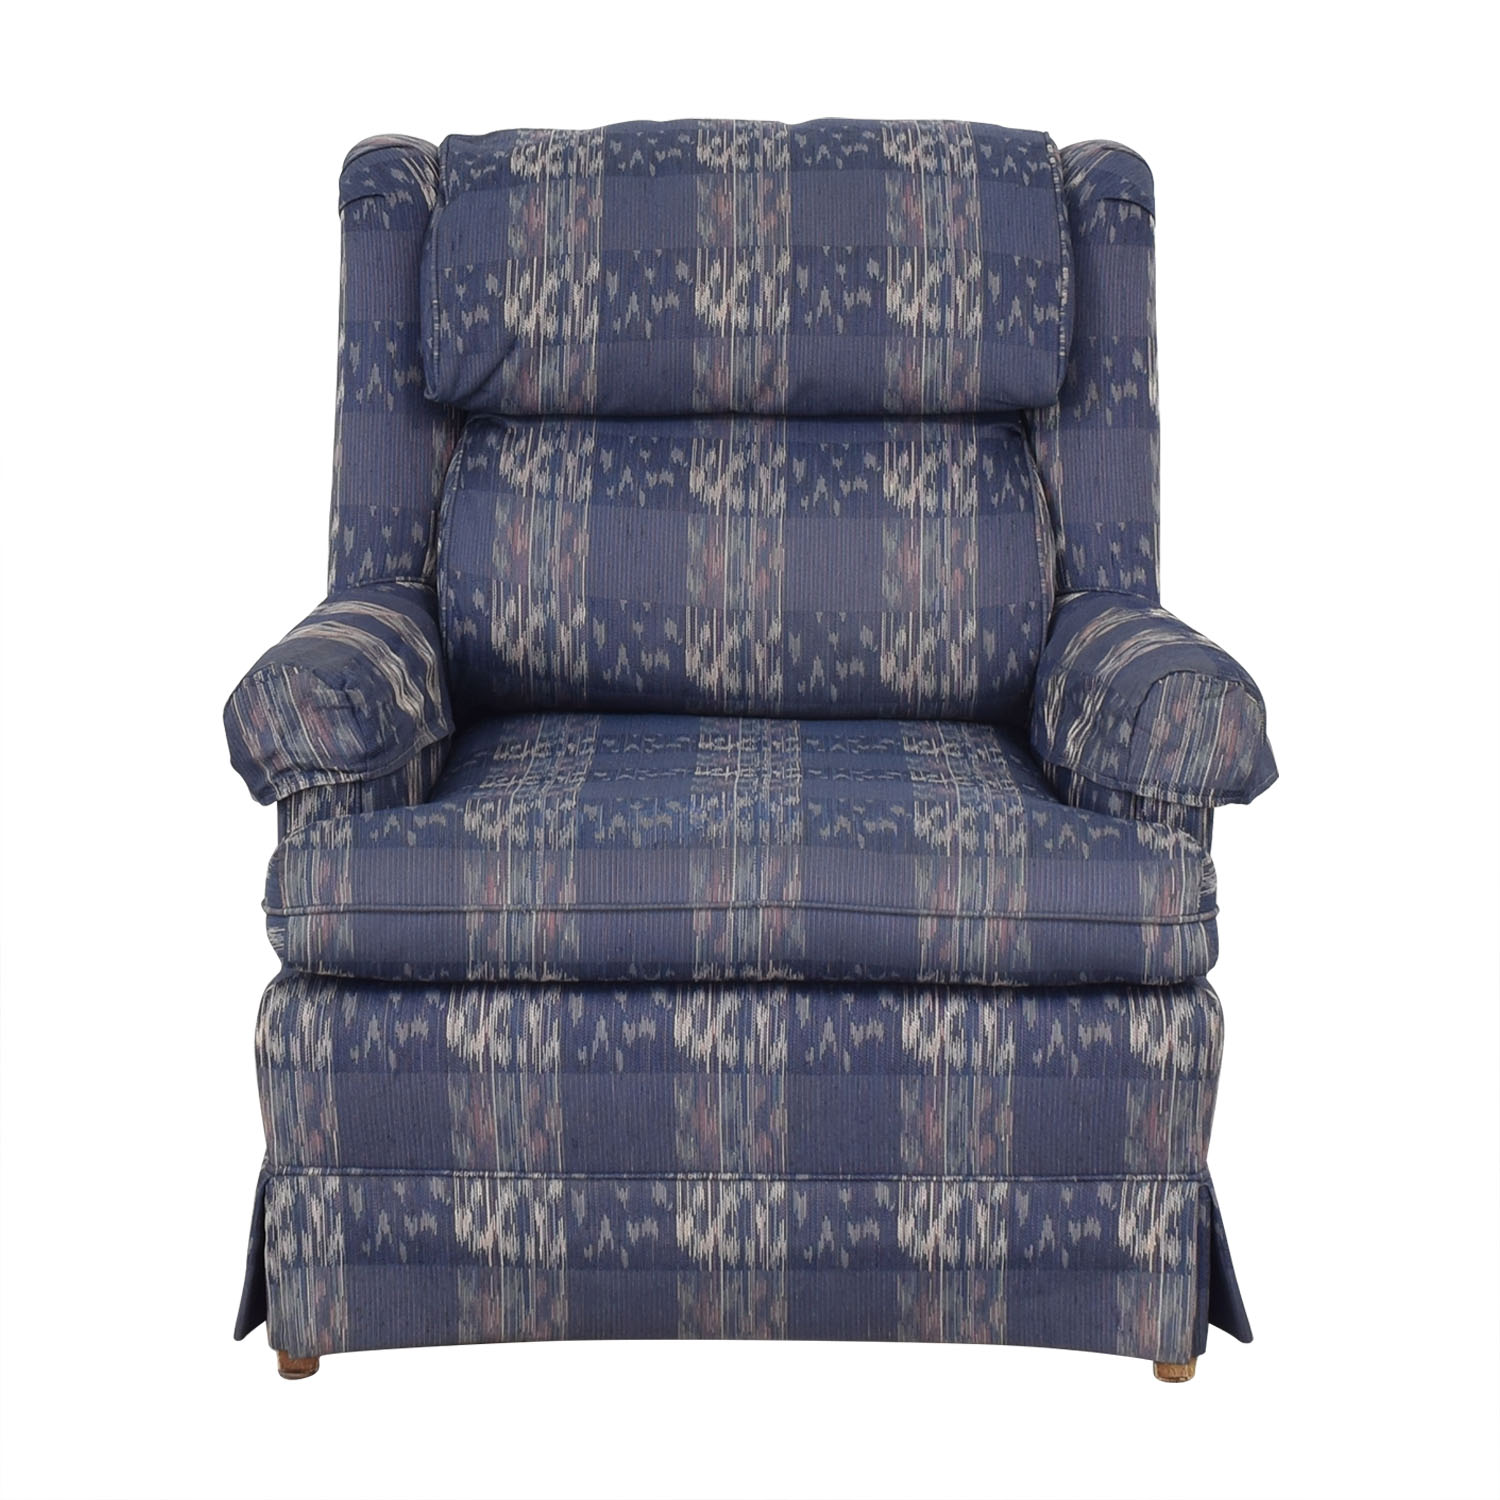 Ethan Allen Ethan Allen Accent Club Chair coupon